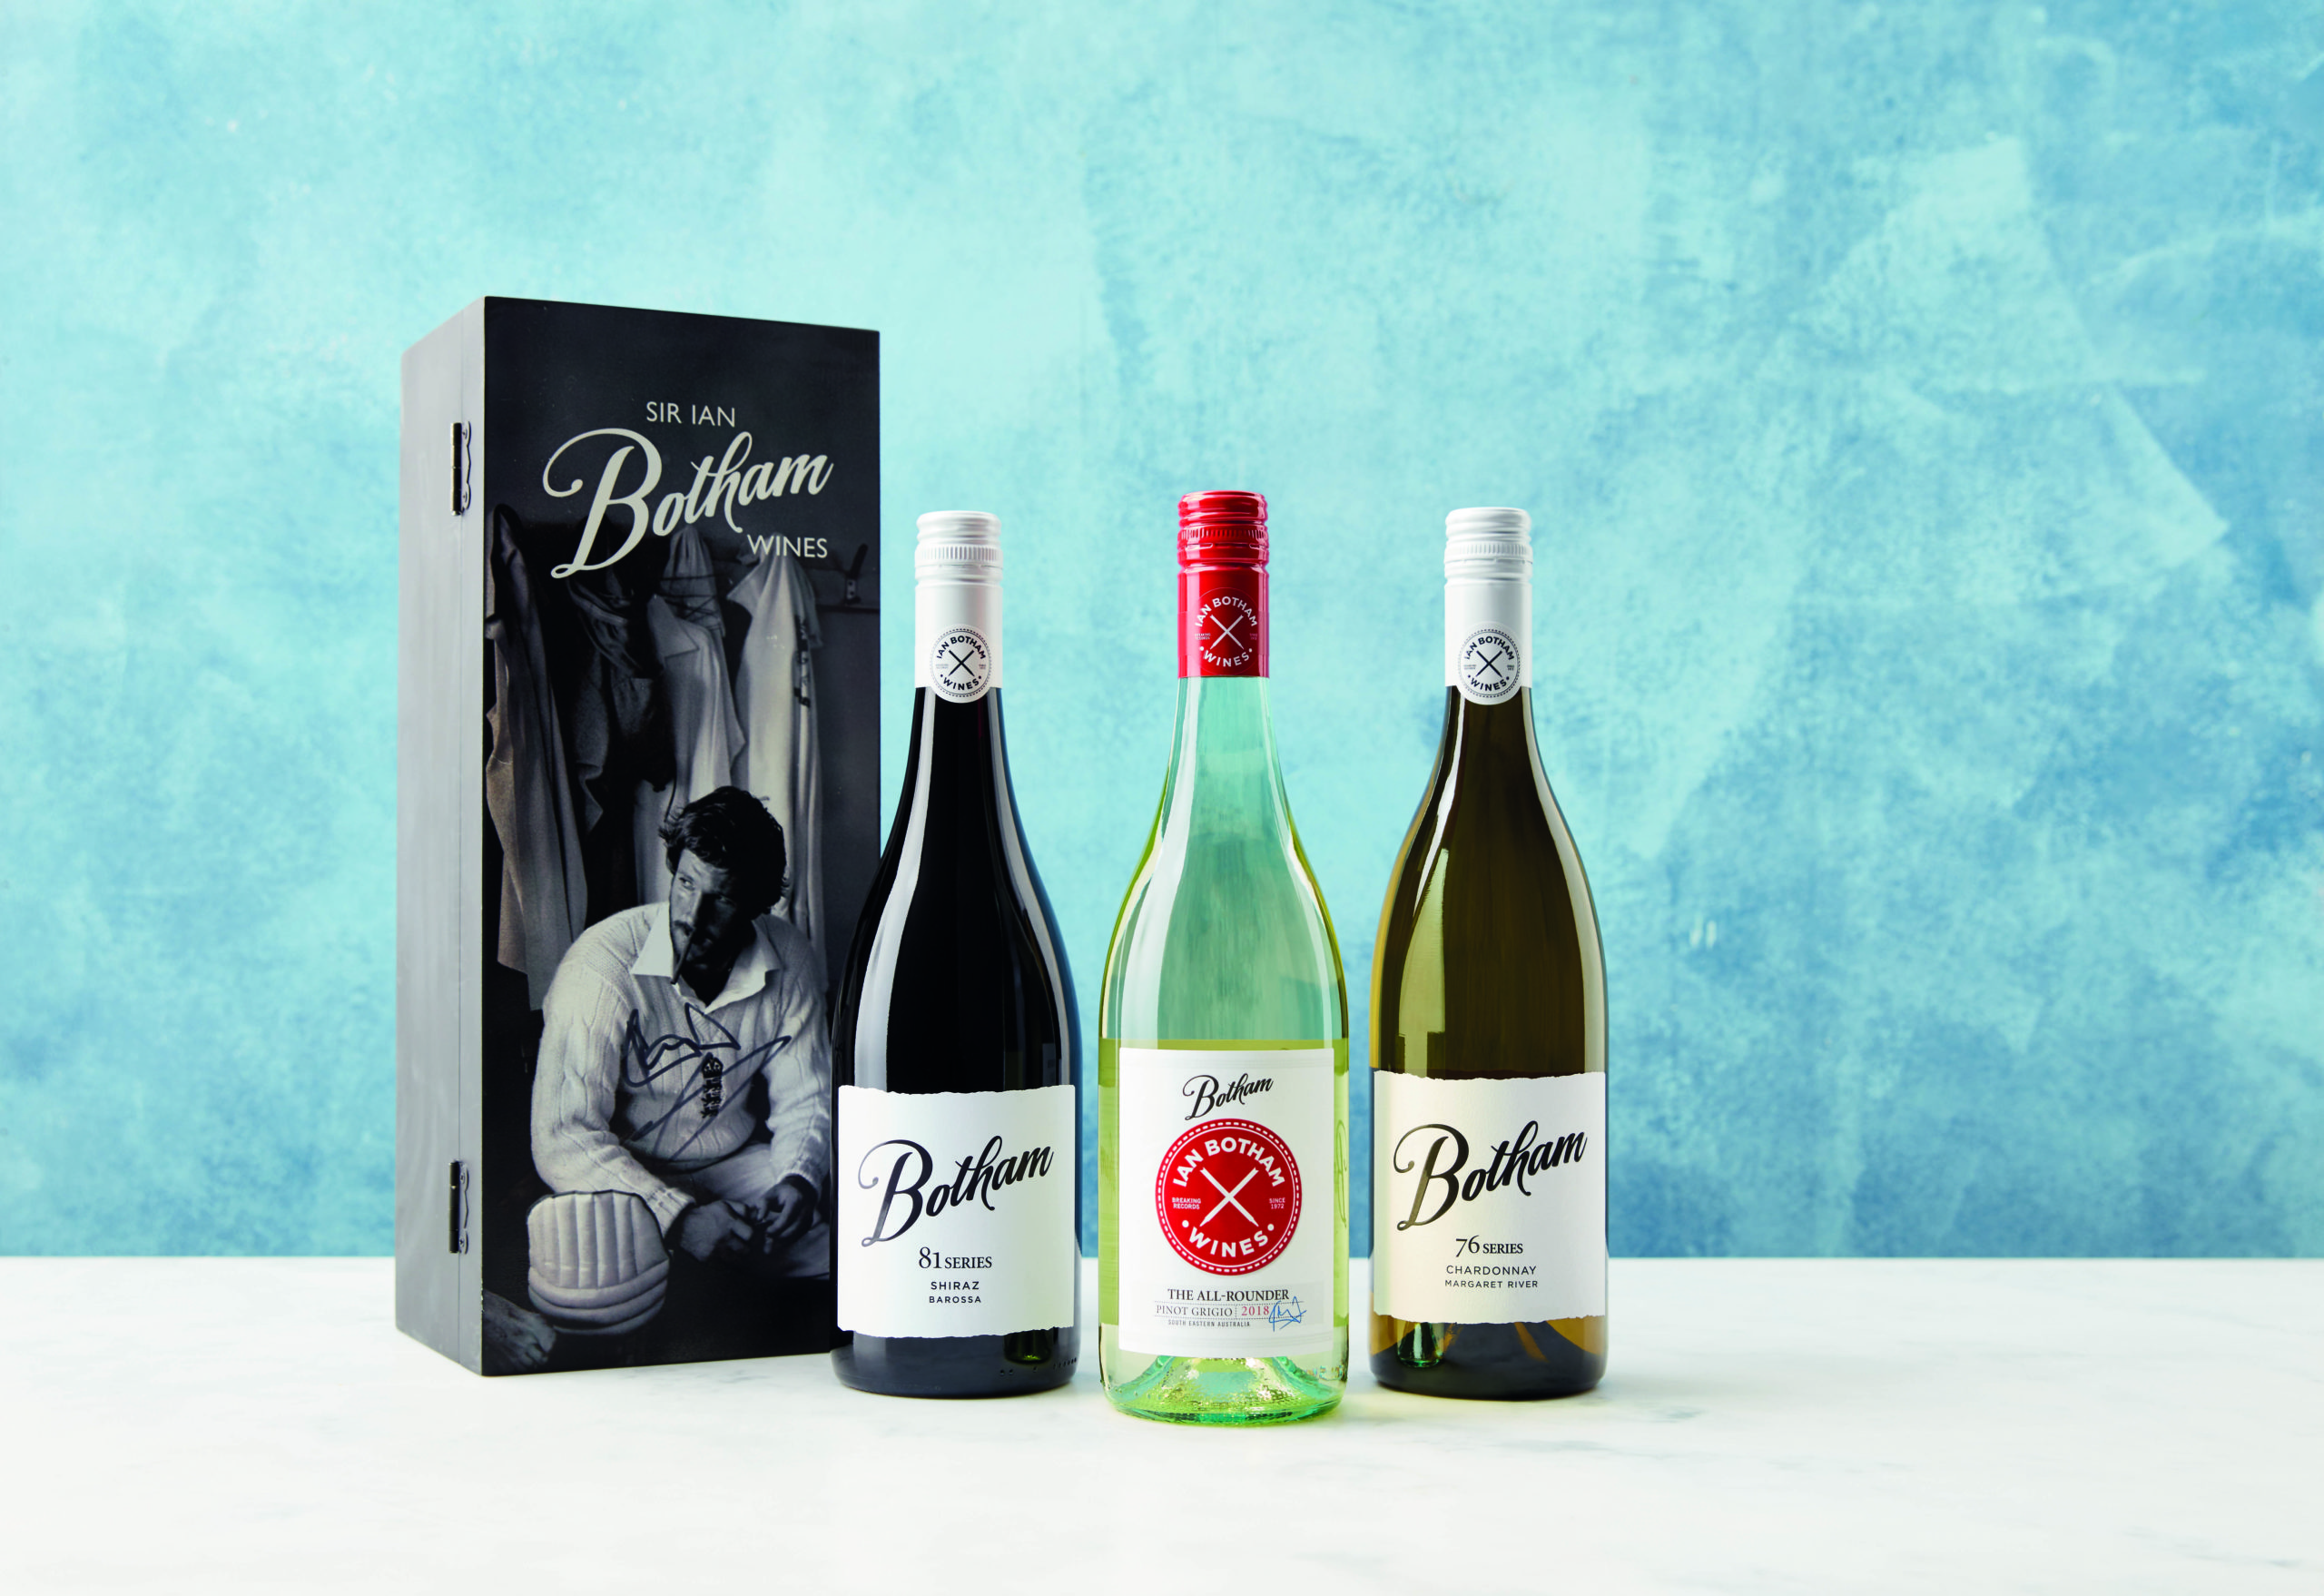 Bothams Wines